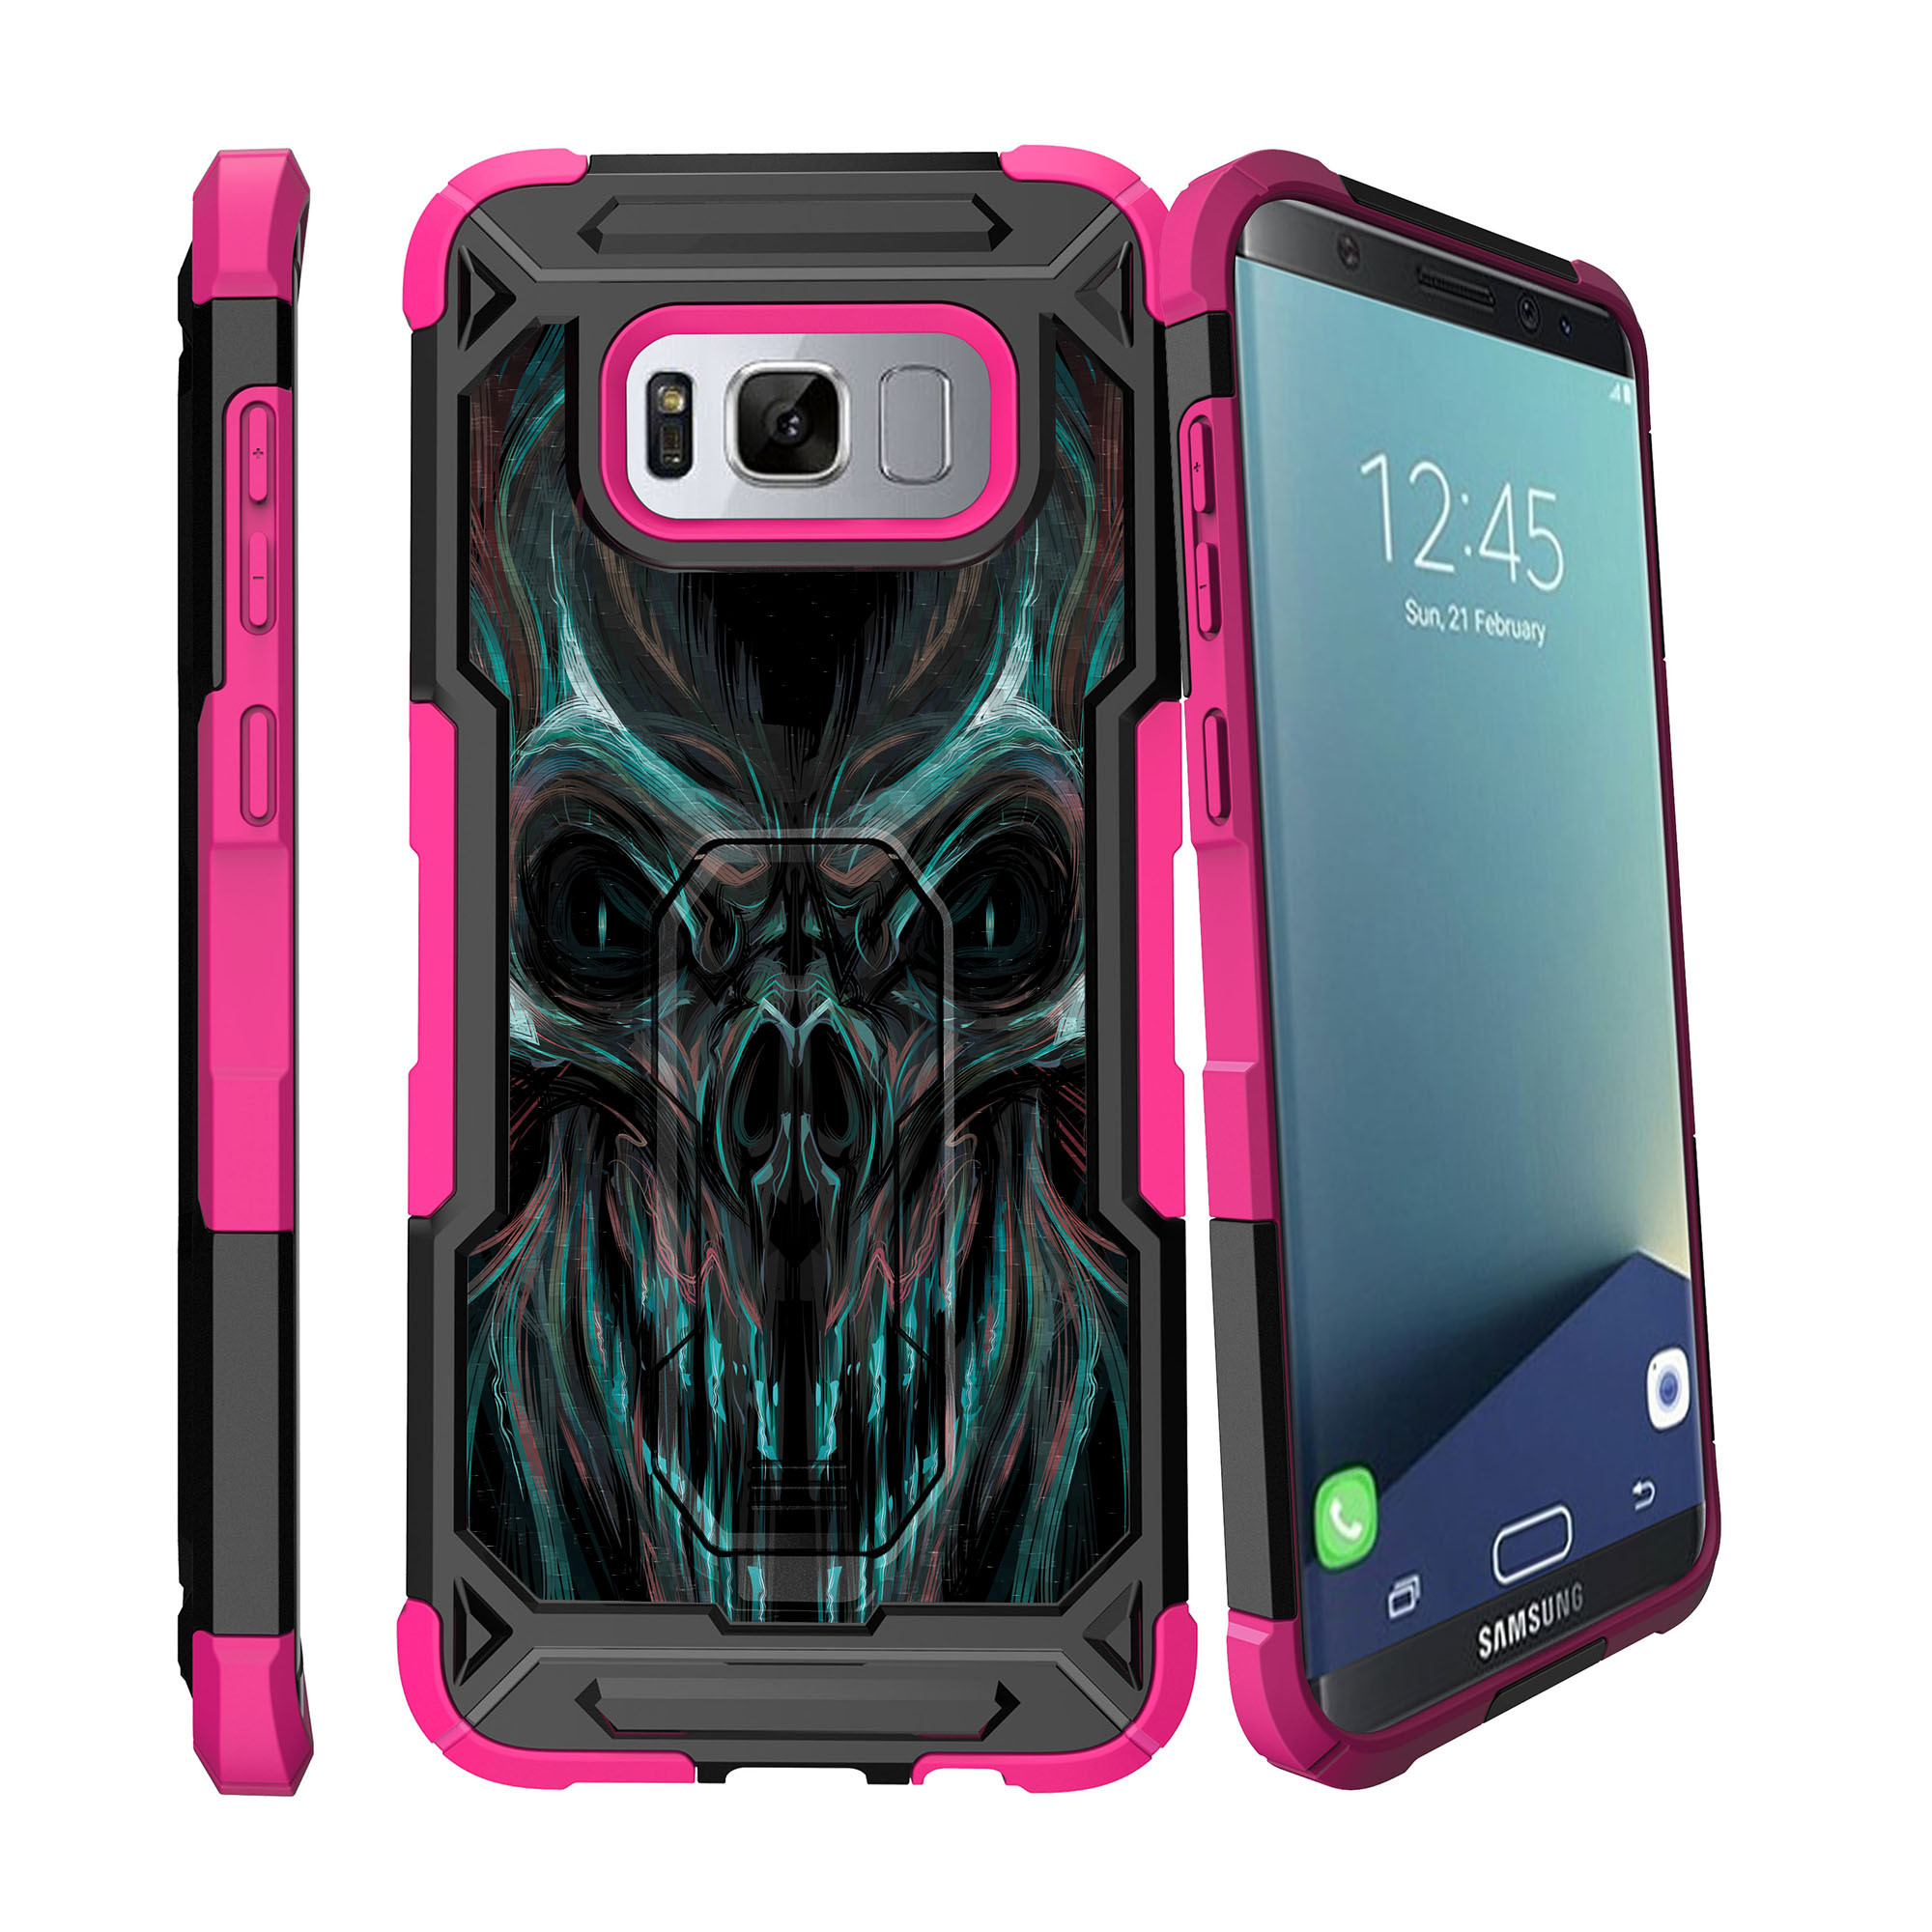 Case for Samsung Galaxy S8 Plus Version [ UFO Defense Case ][Galaxy S8 PLUS SM-G955][Pink Silicone] Carbon Fiber Texture Case with Holster + Stand Skull Collection